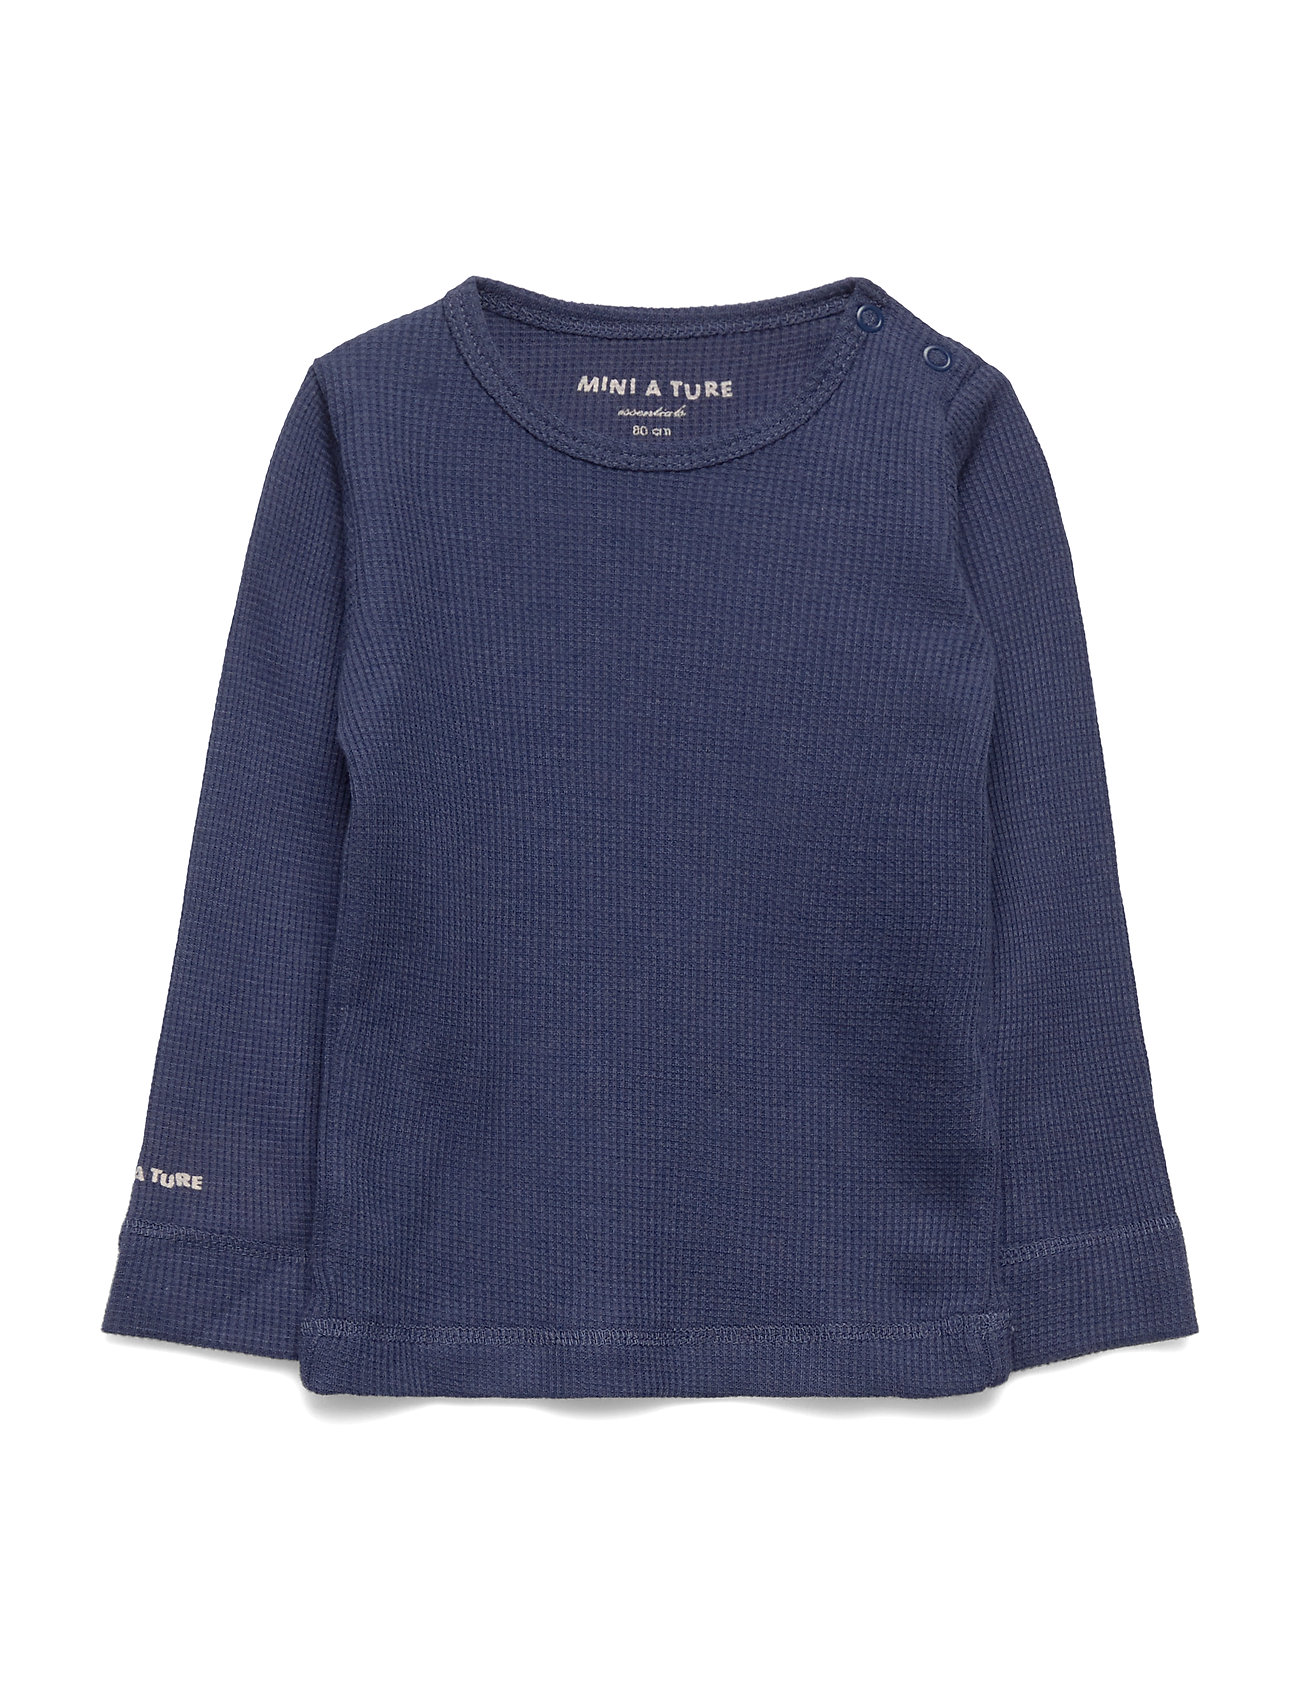 Mini A Ture Erion T-shirt, MK - MOOD INDIGO